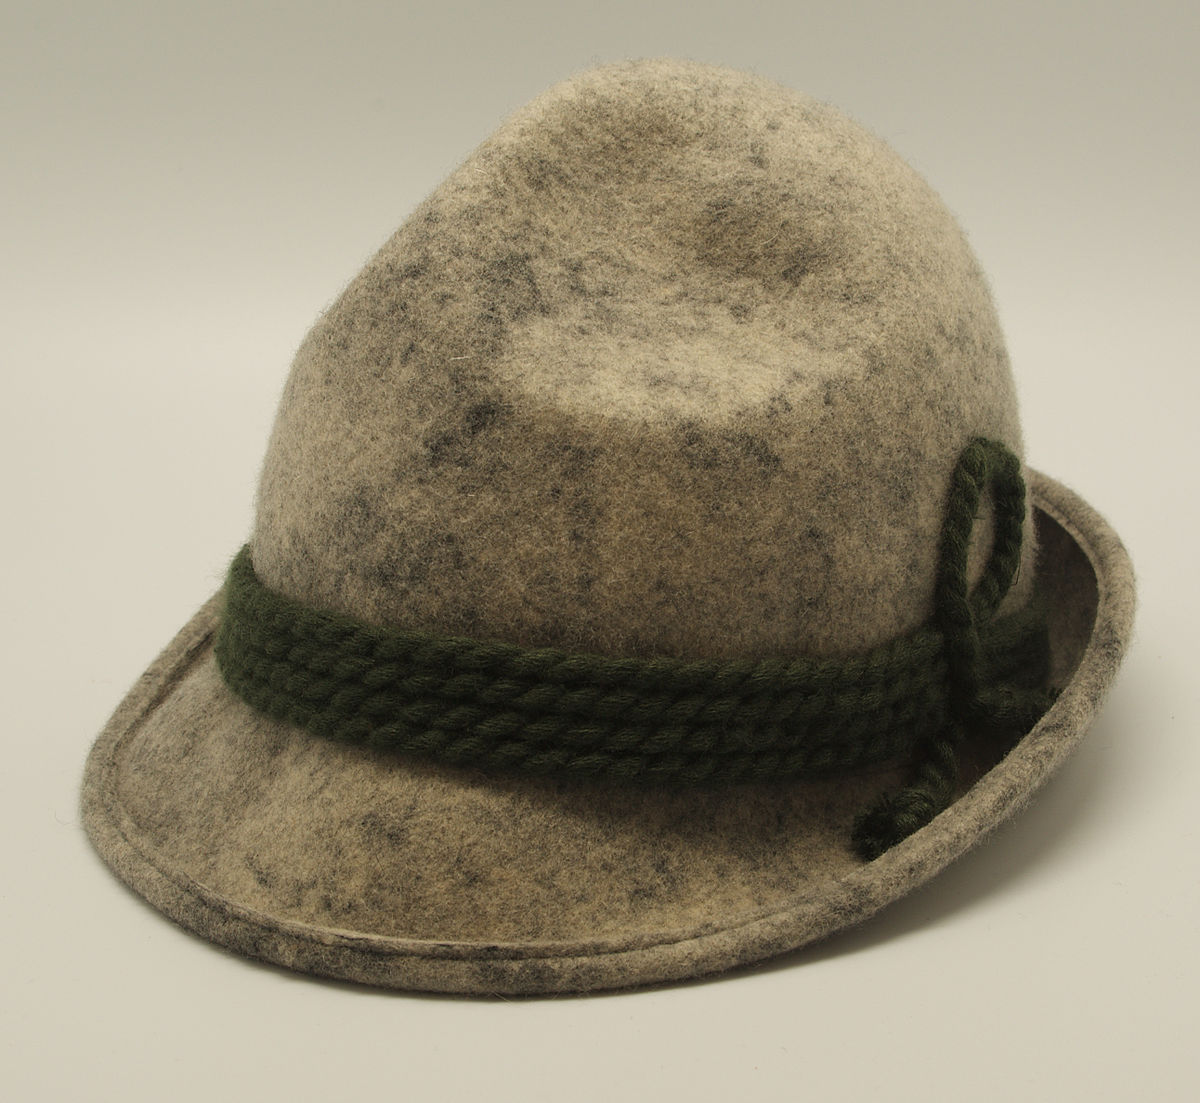 49992bc20c4 Tyrolean hat - Wikipedia